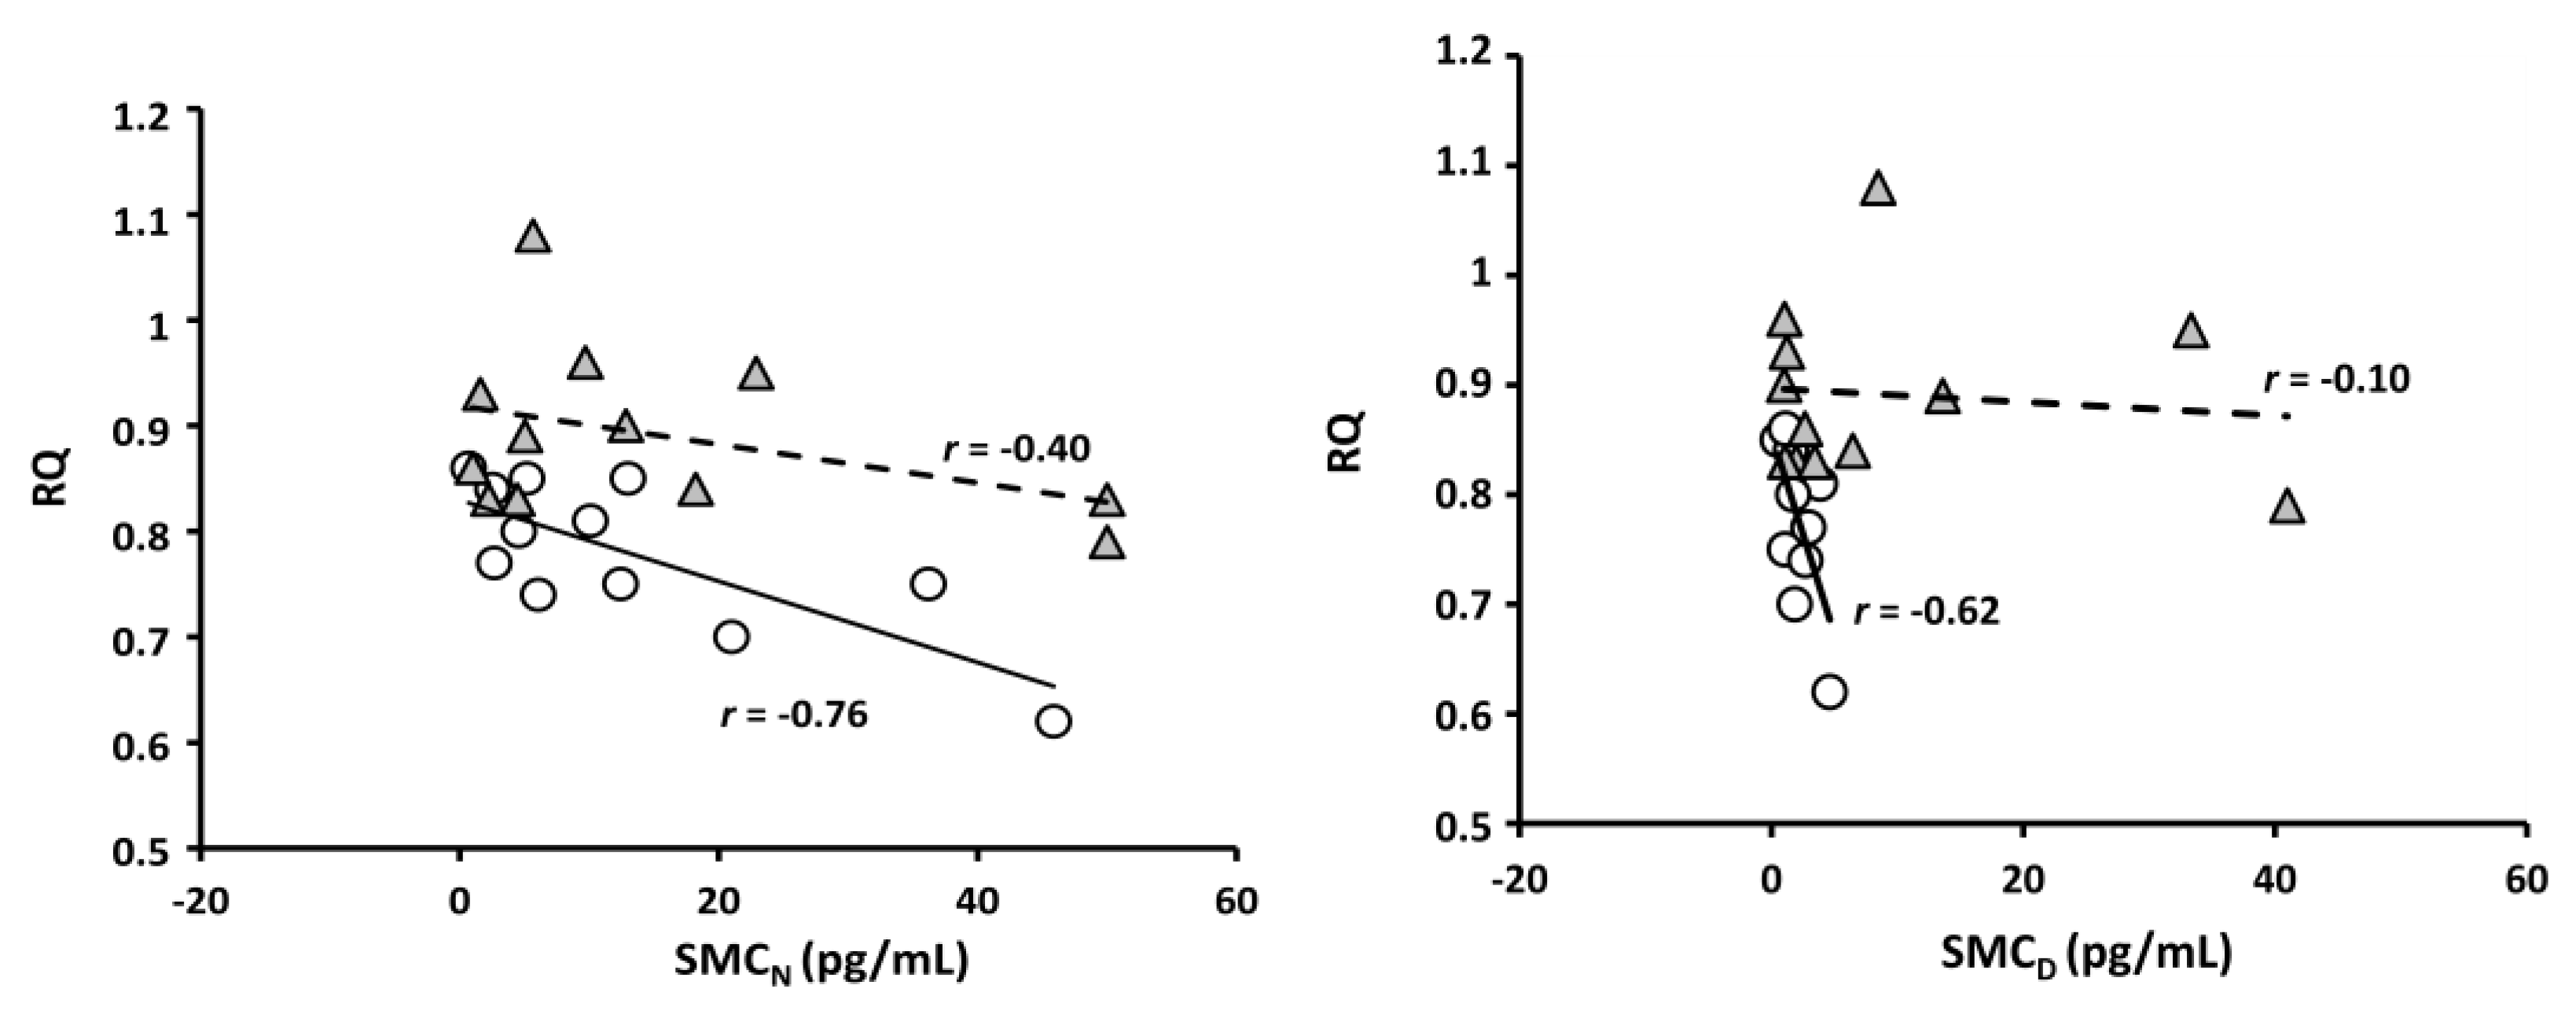 Ijms Free Full Text Melatonin Relations With Energy Metabolism As Possibly Involved In Fatal Mountain Road Traffic Accidents Html